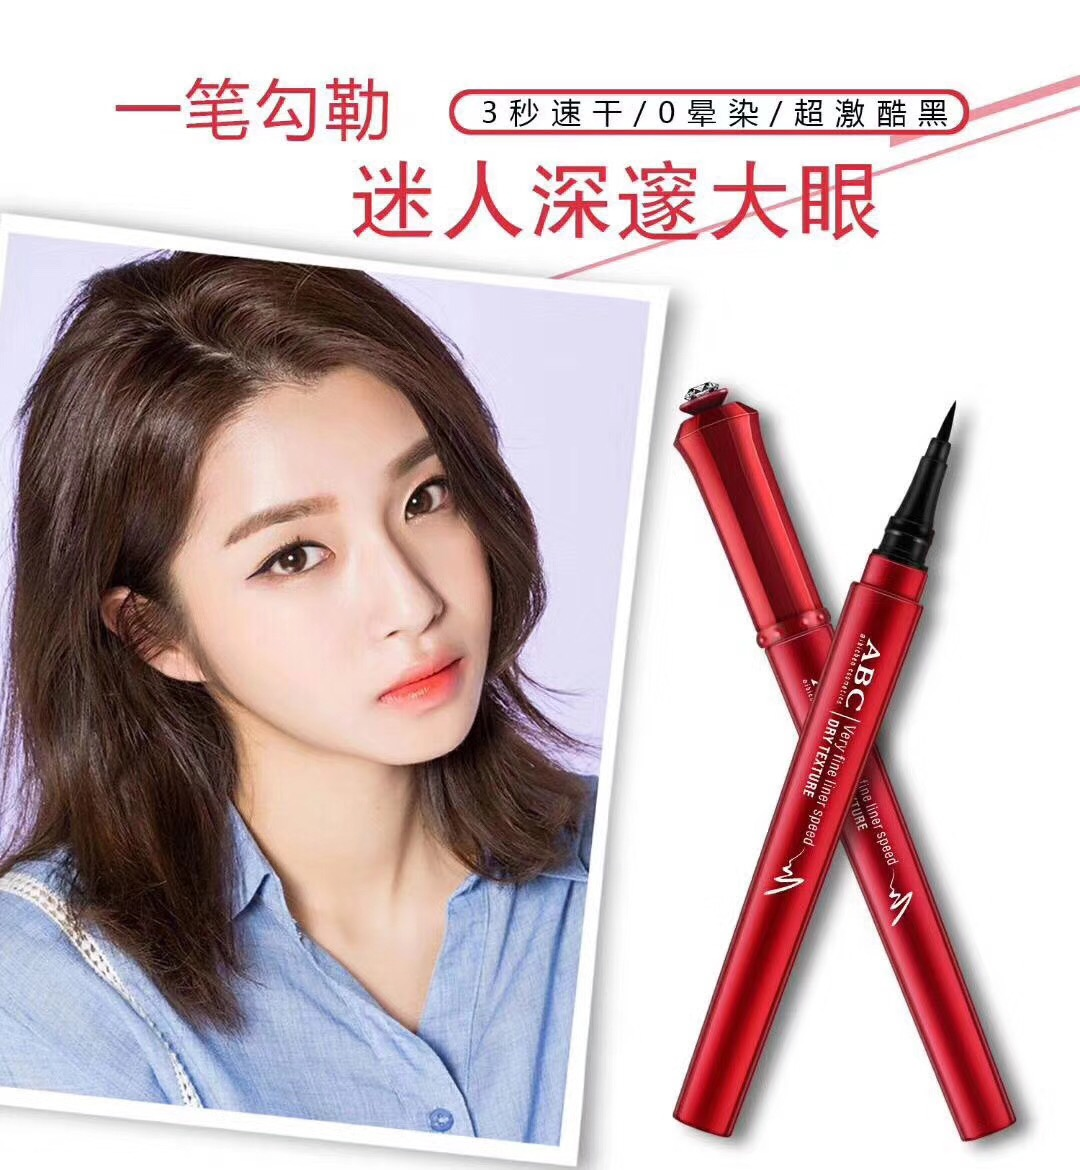 New product ABC thick black quick drying Eyeliner Pen waterproof and sweat resistant, lasting no dizzy eye liner.